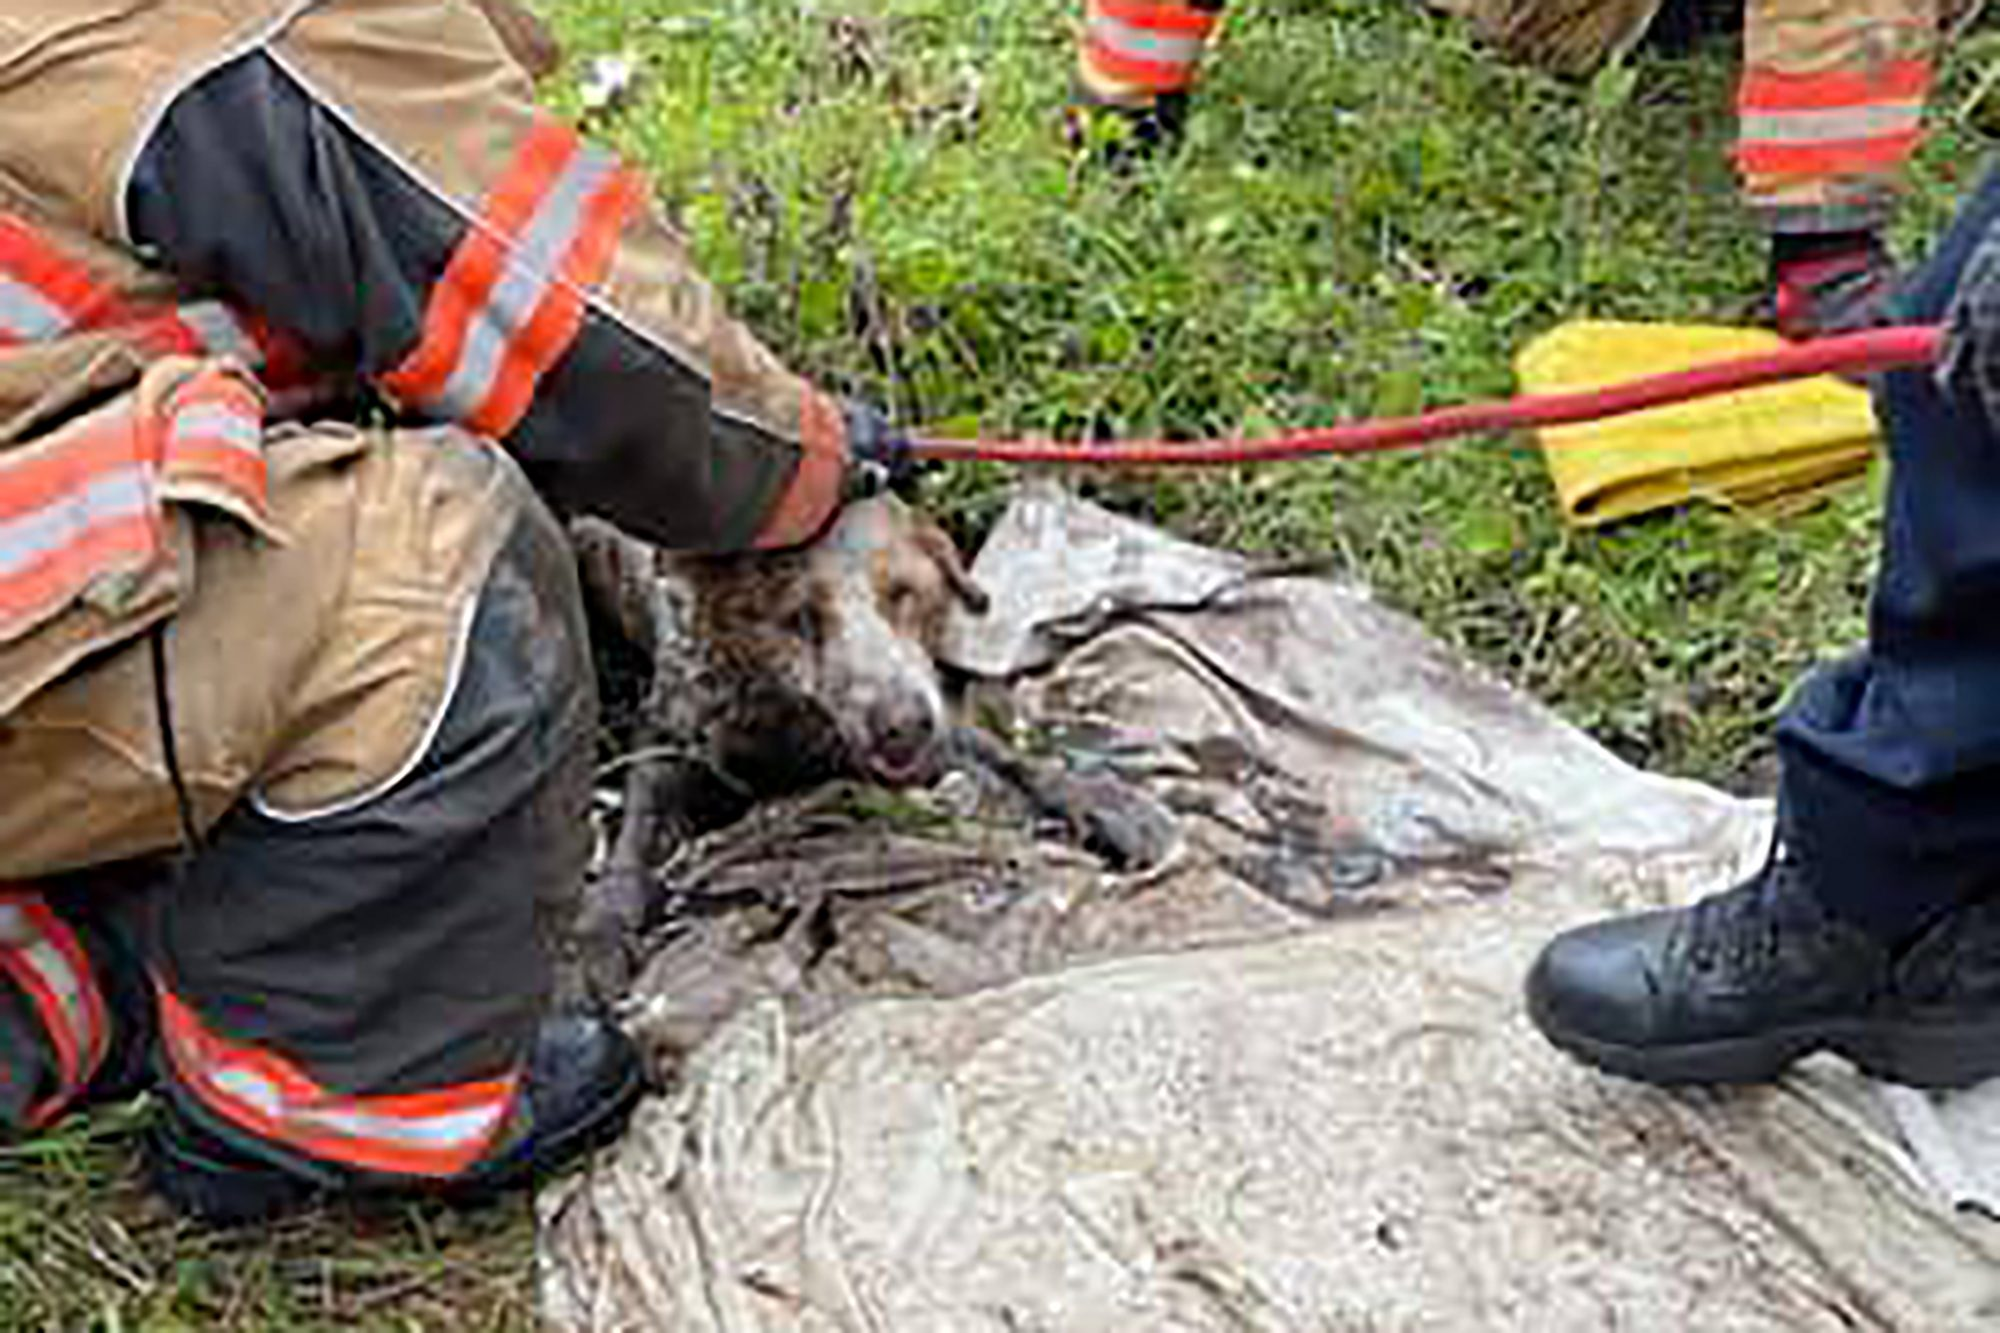 Firefighters save muddy dog from pipe